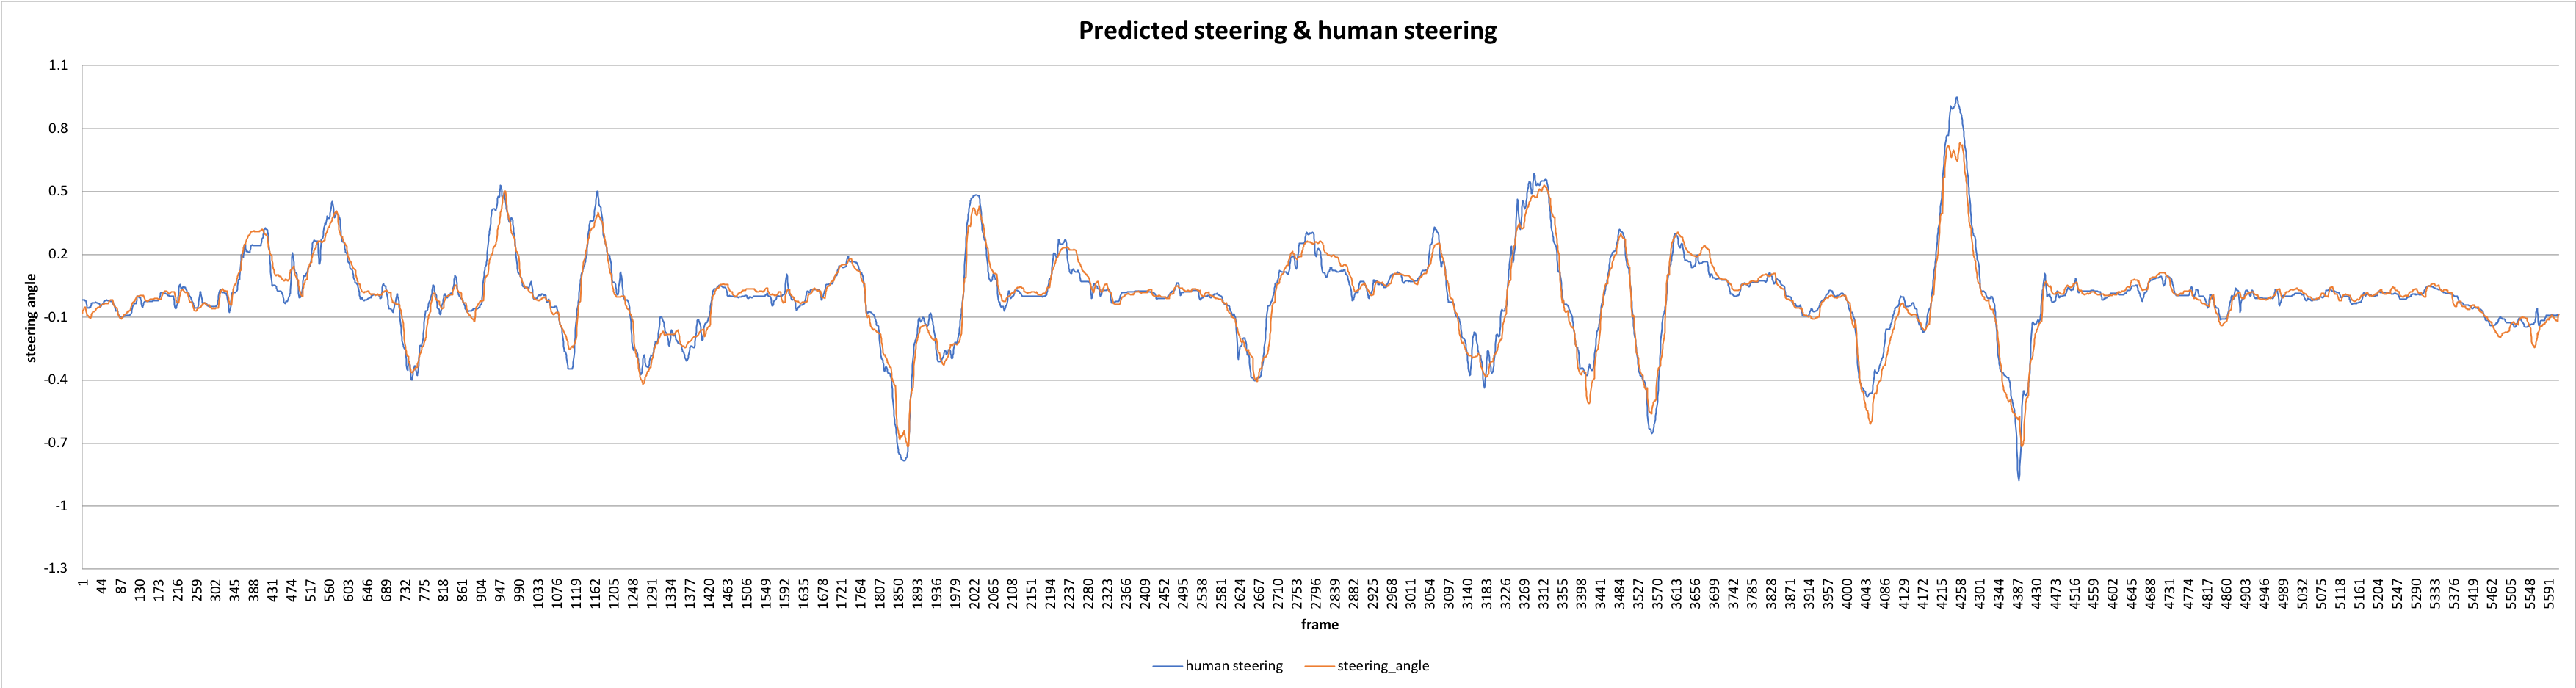 Predicting Steering Angles with Deep Learning — Part 2